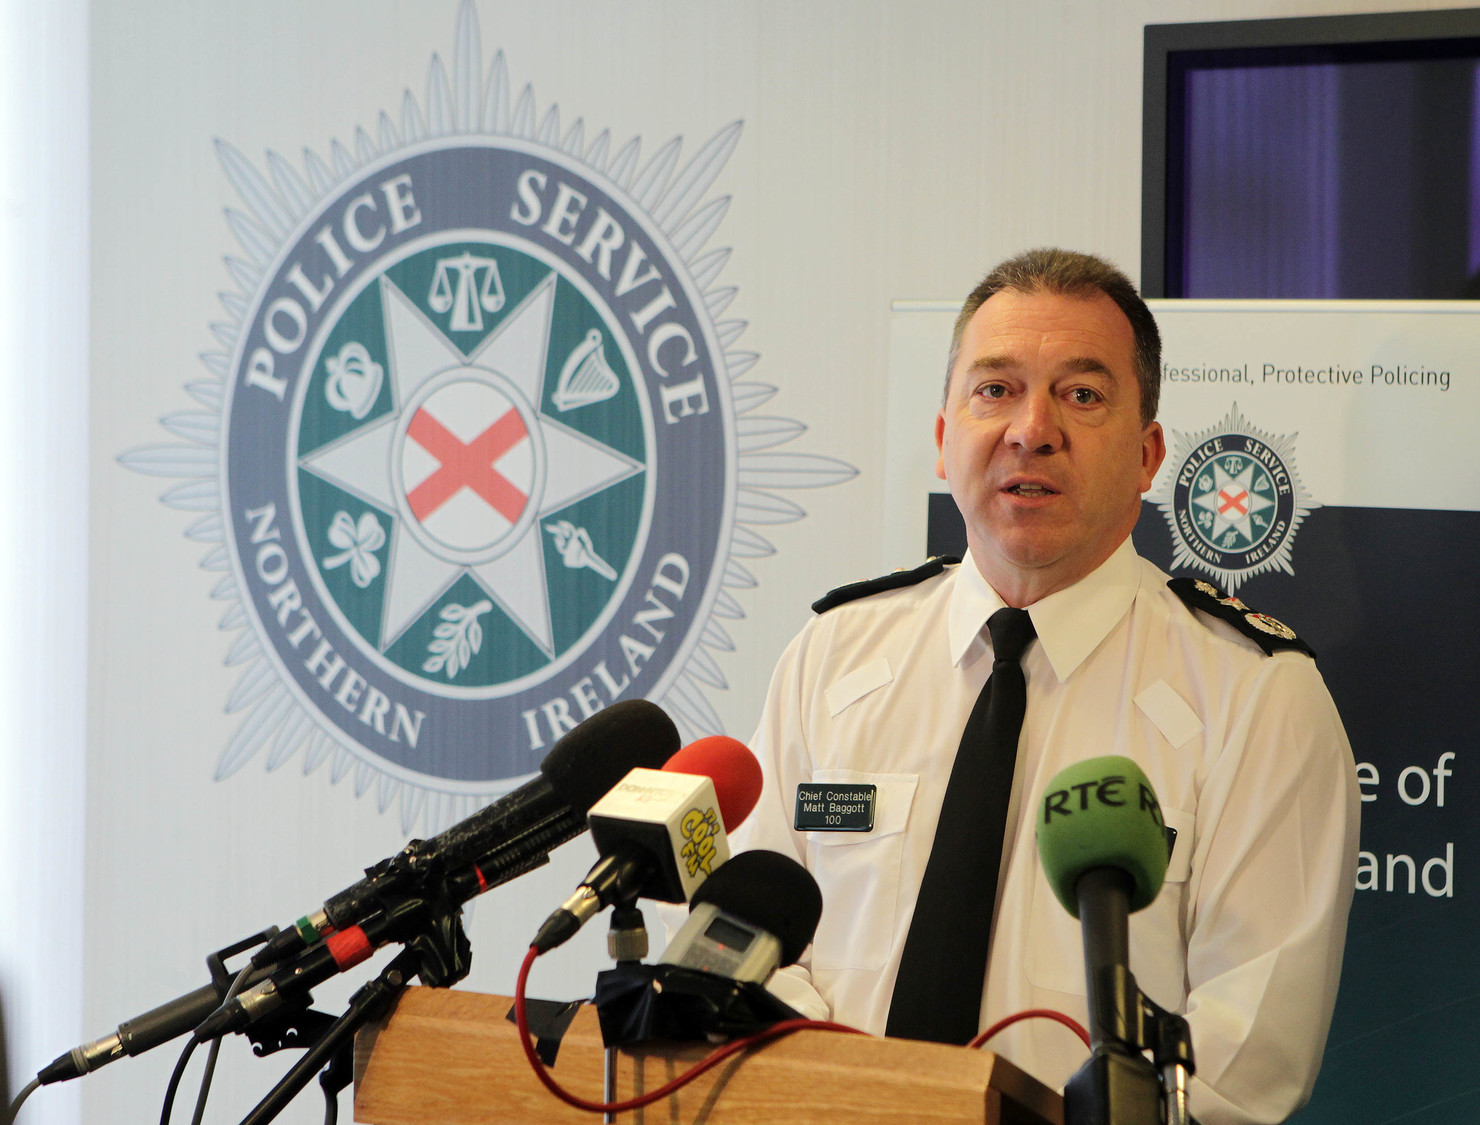 Matt Baggott has been PSNI Chief Constable since September 2009